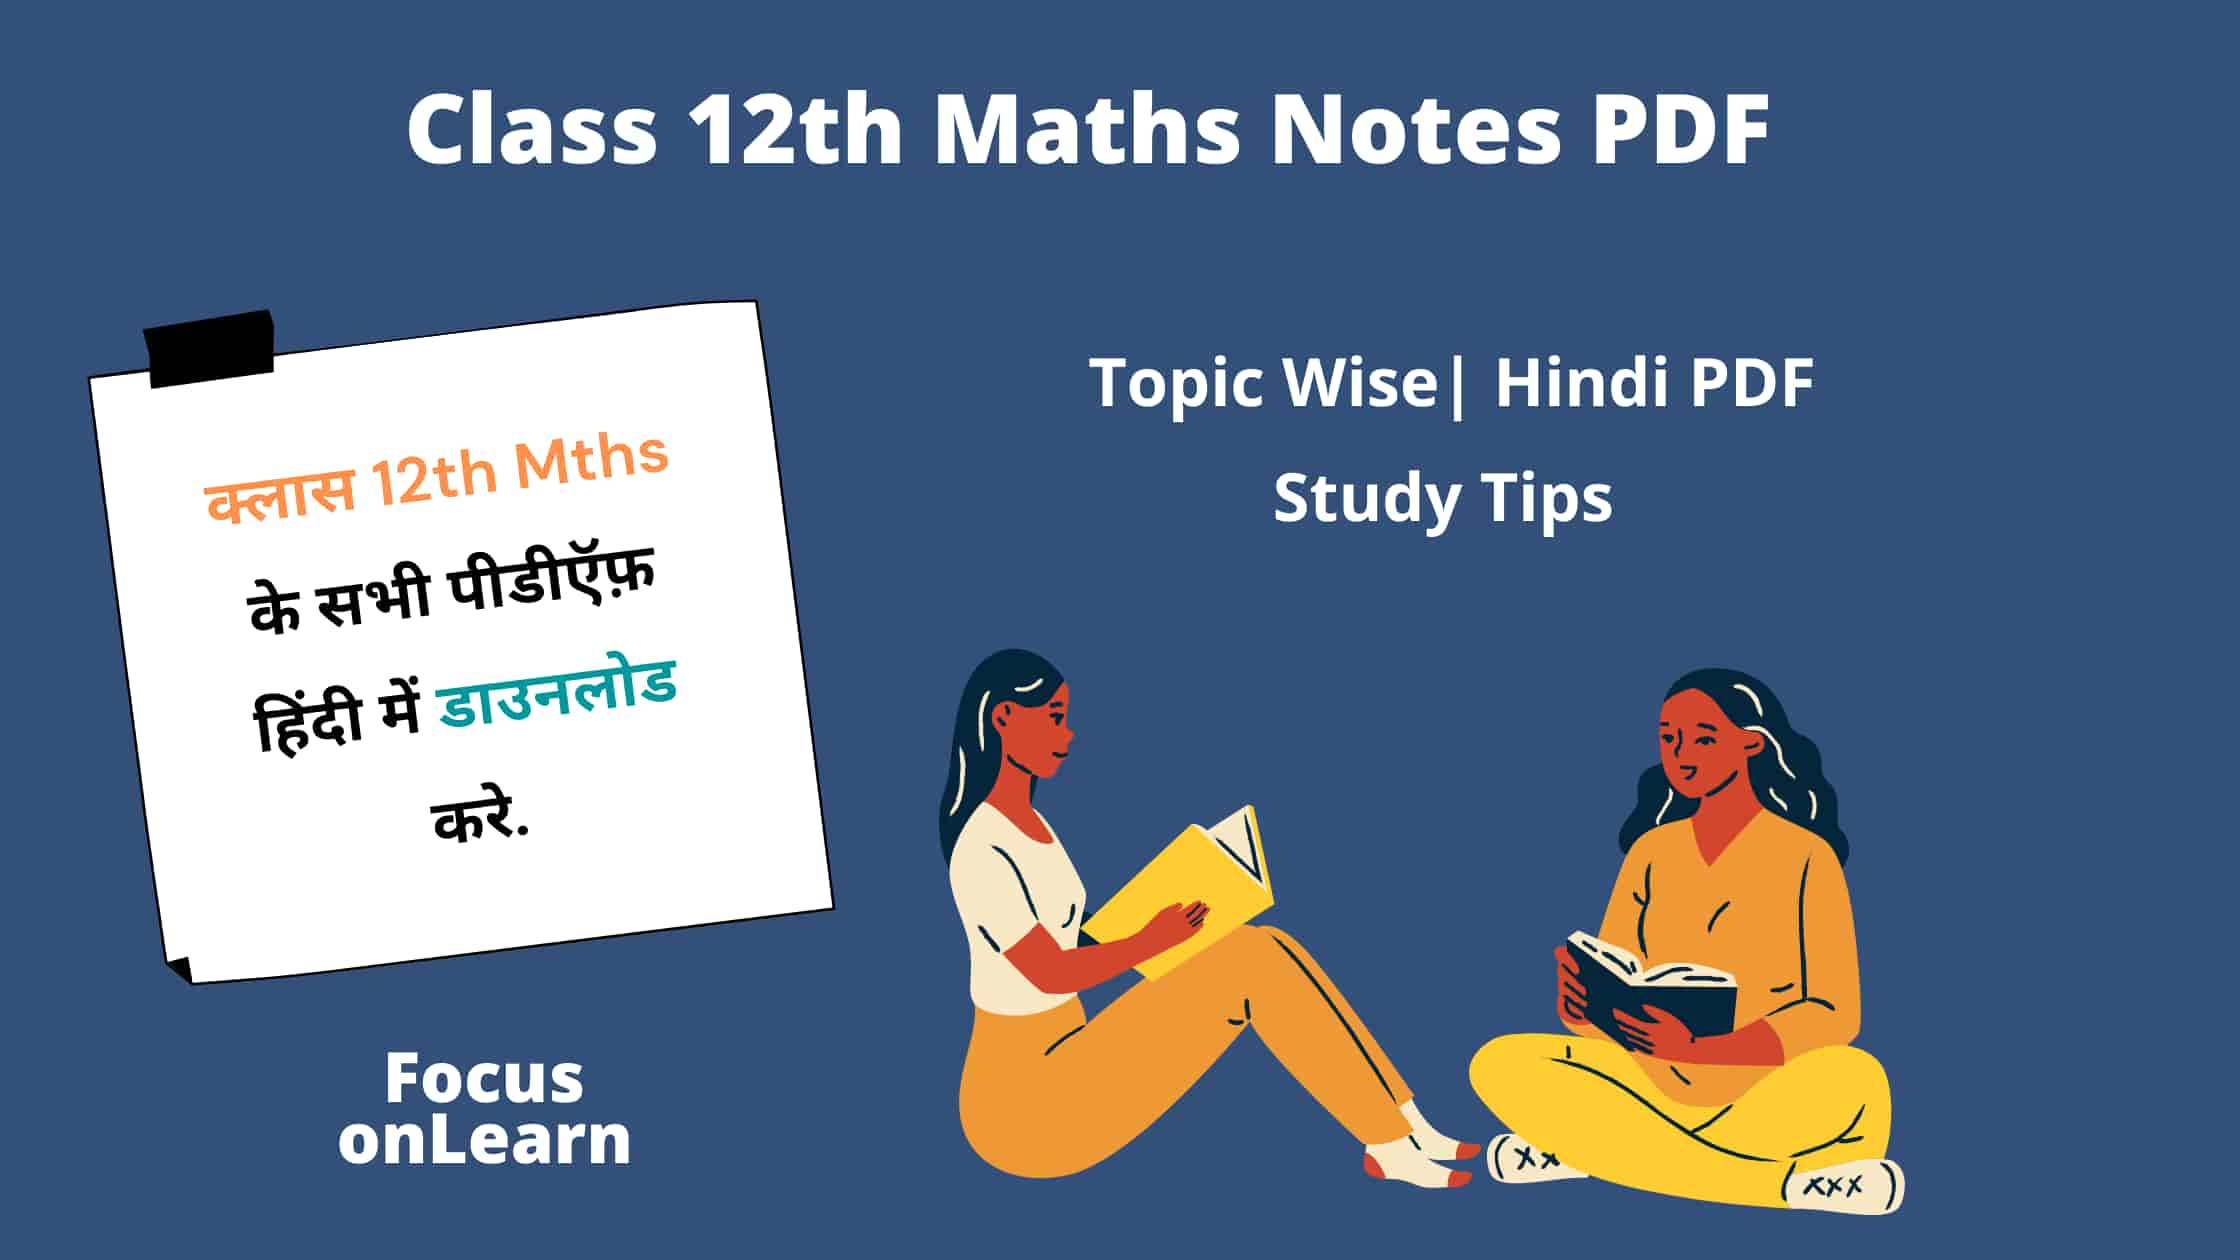 Class 12th Maths Notes PDF in Hindi